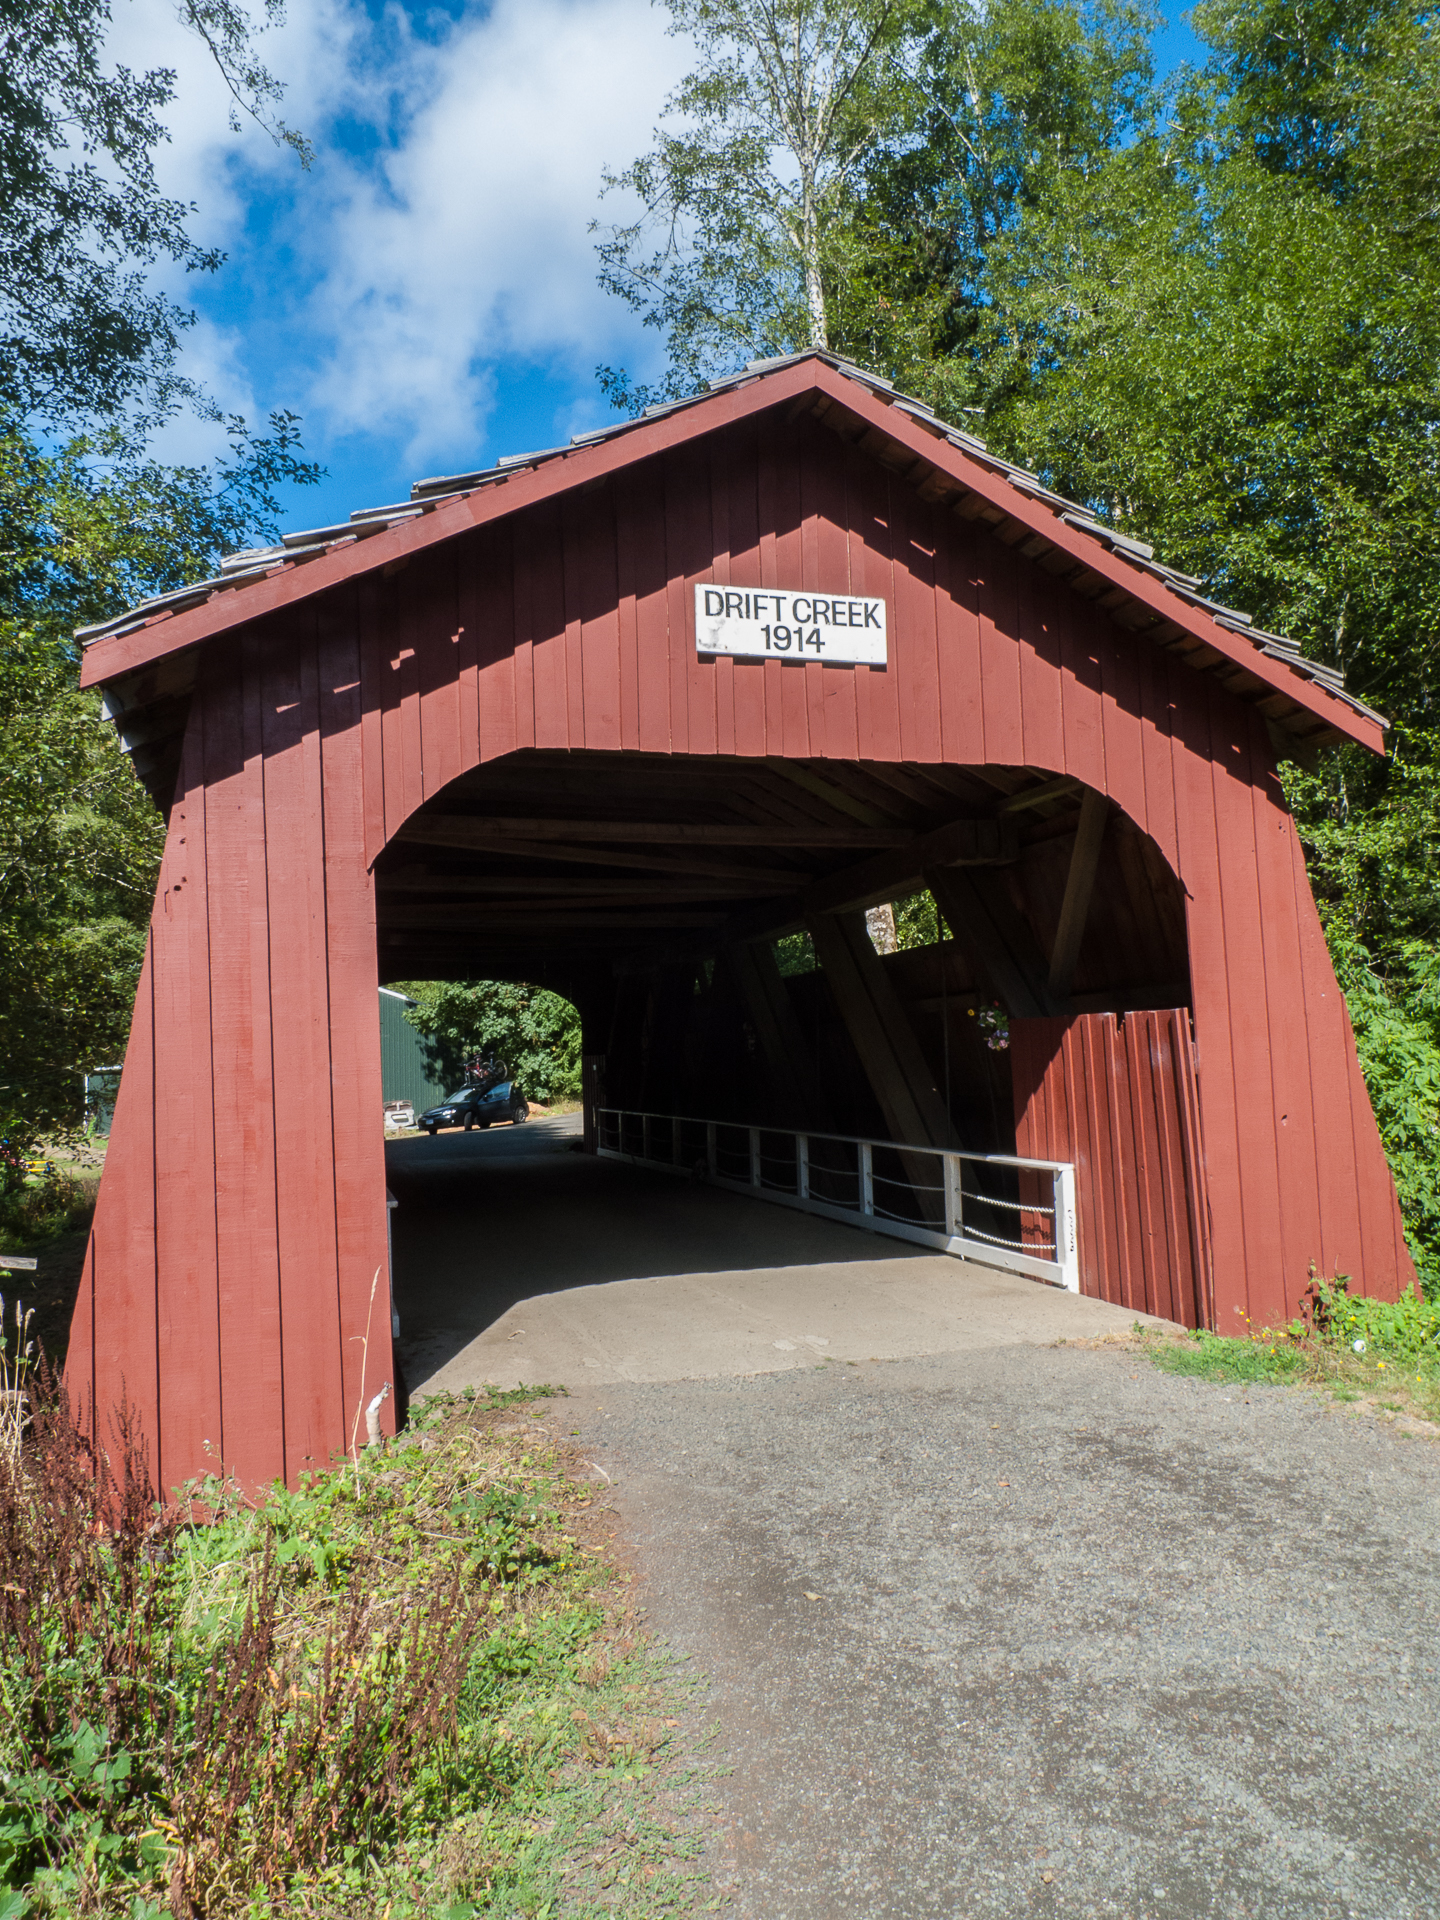 The covered bridge over Drift Creek. In fairness, it was much shorter than I was expecting.